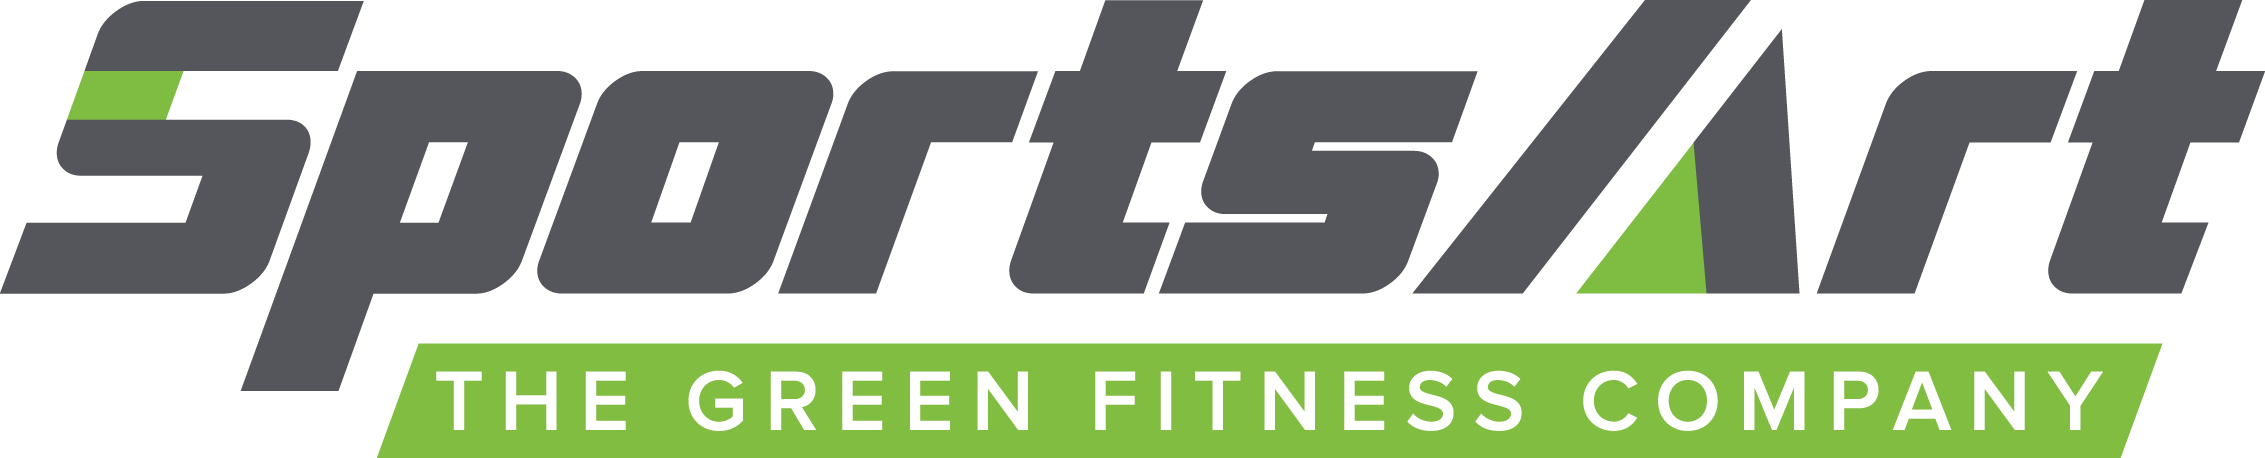 SportsArt-The-Green-Fitness-Company-Primary-Logo_3C-Gray-Green-White.png